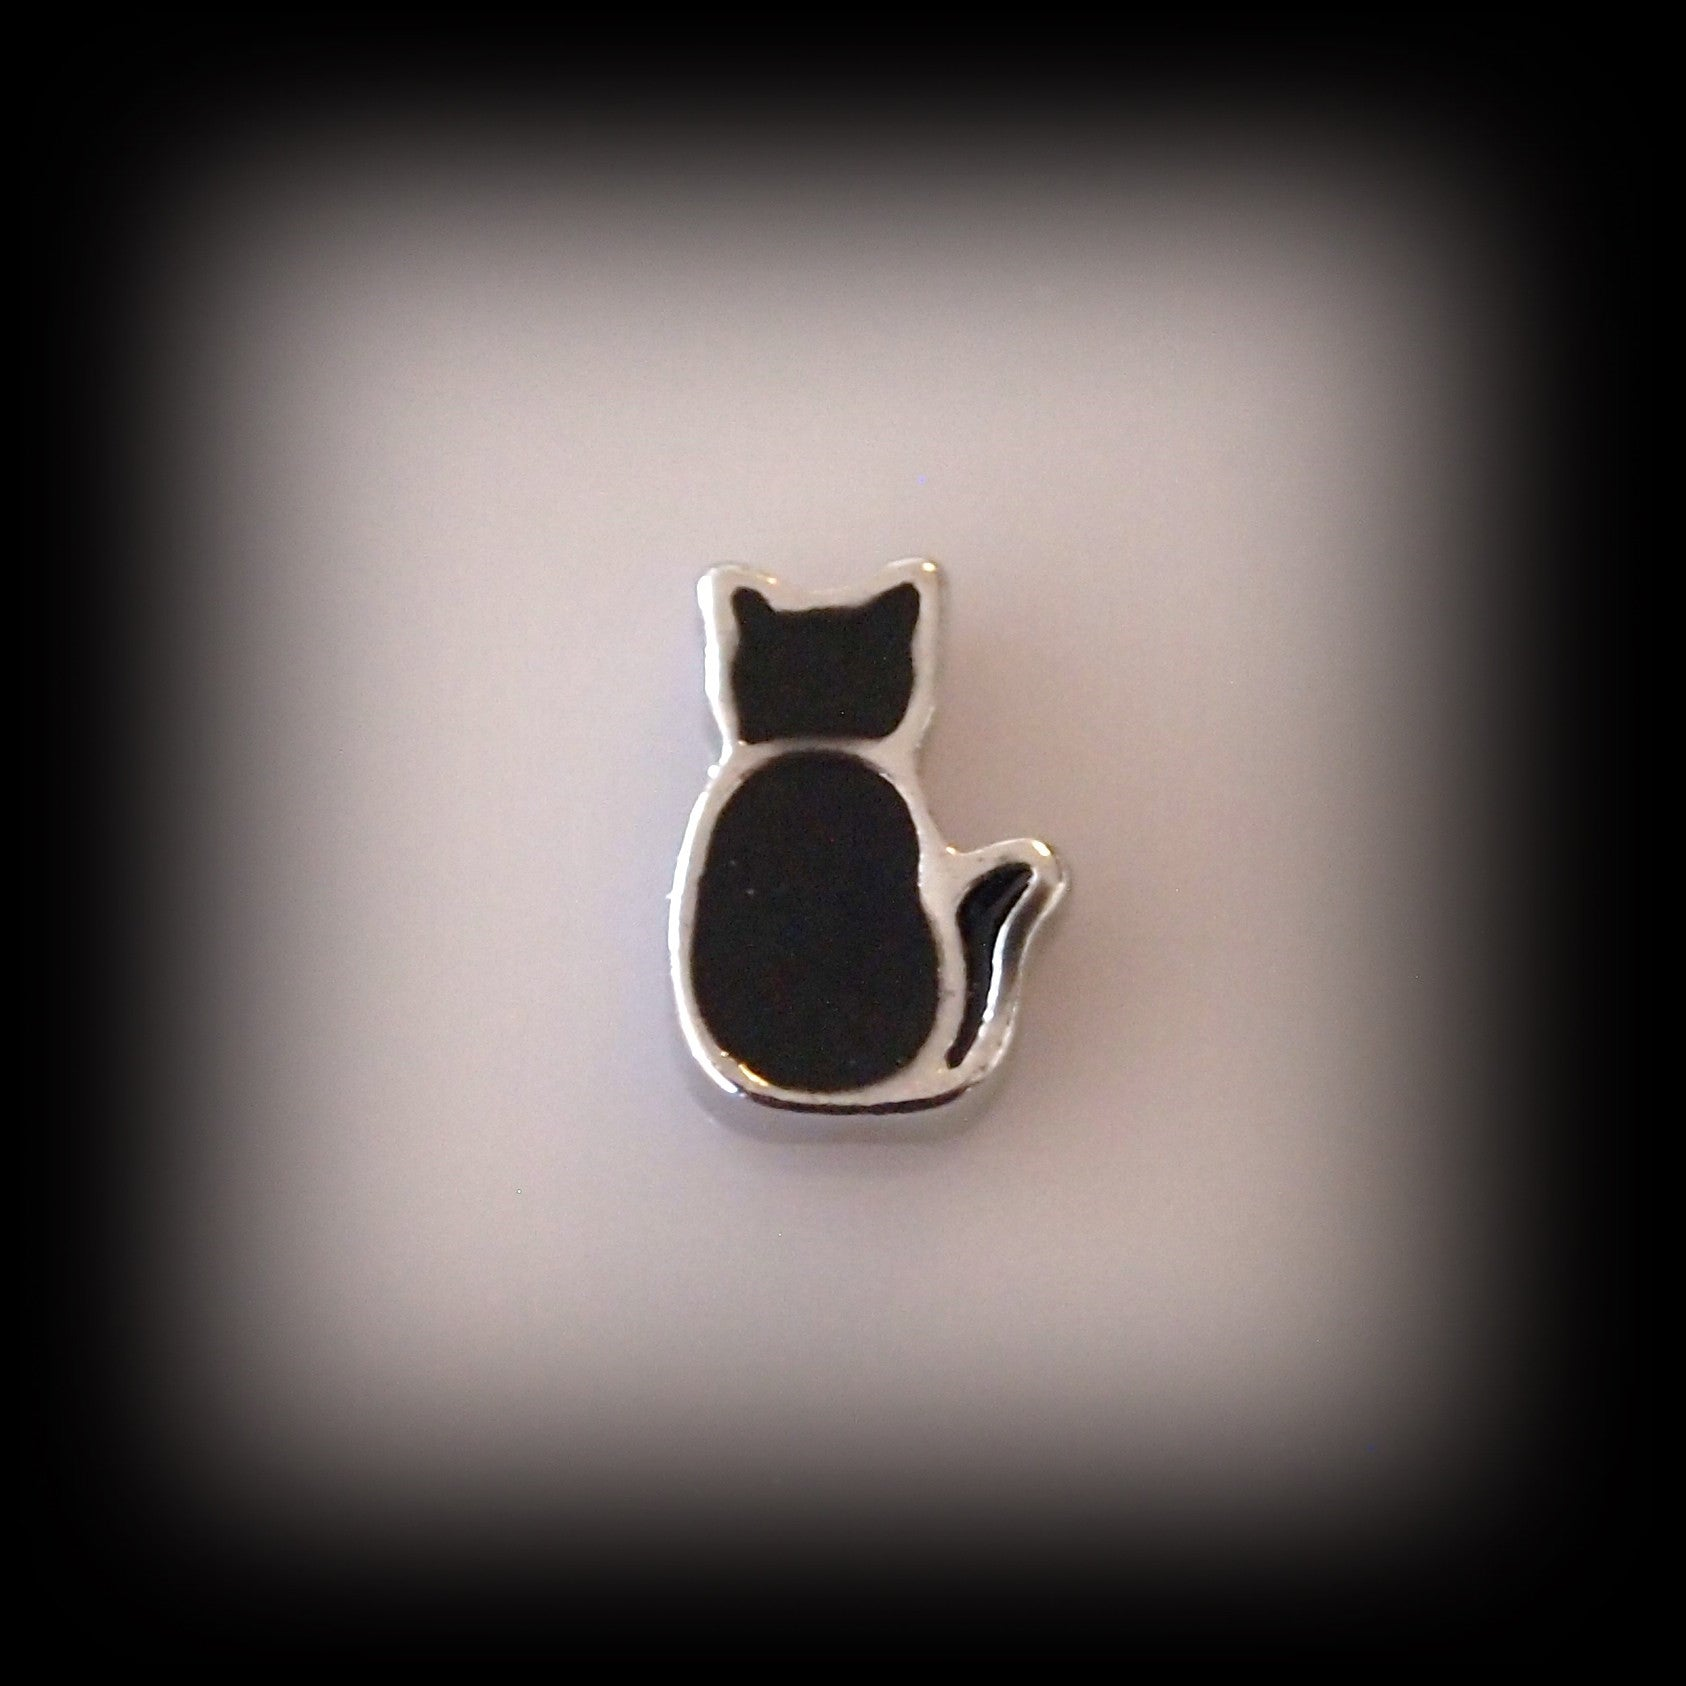 Black Cat Floating Charm - Find Something Special